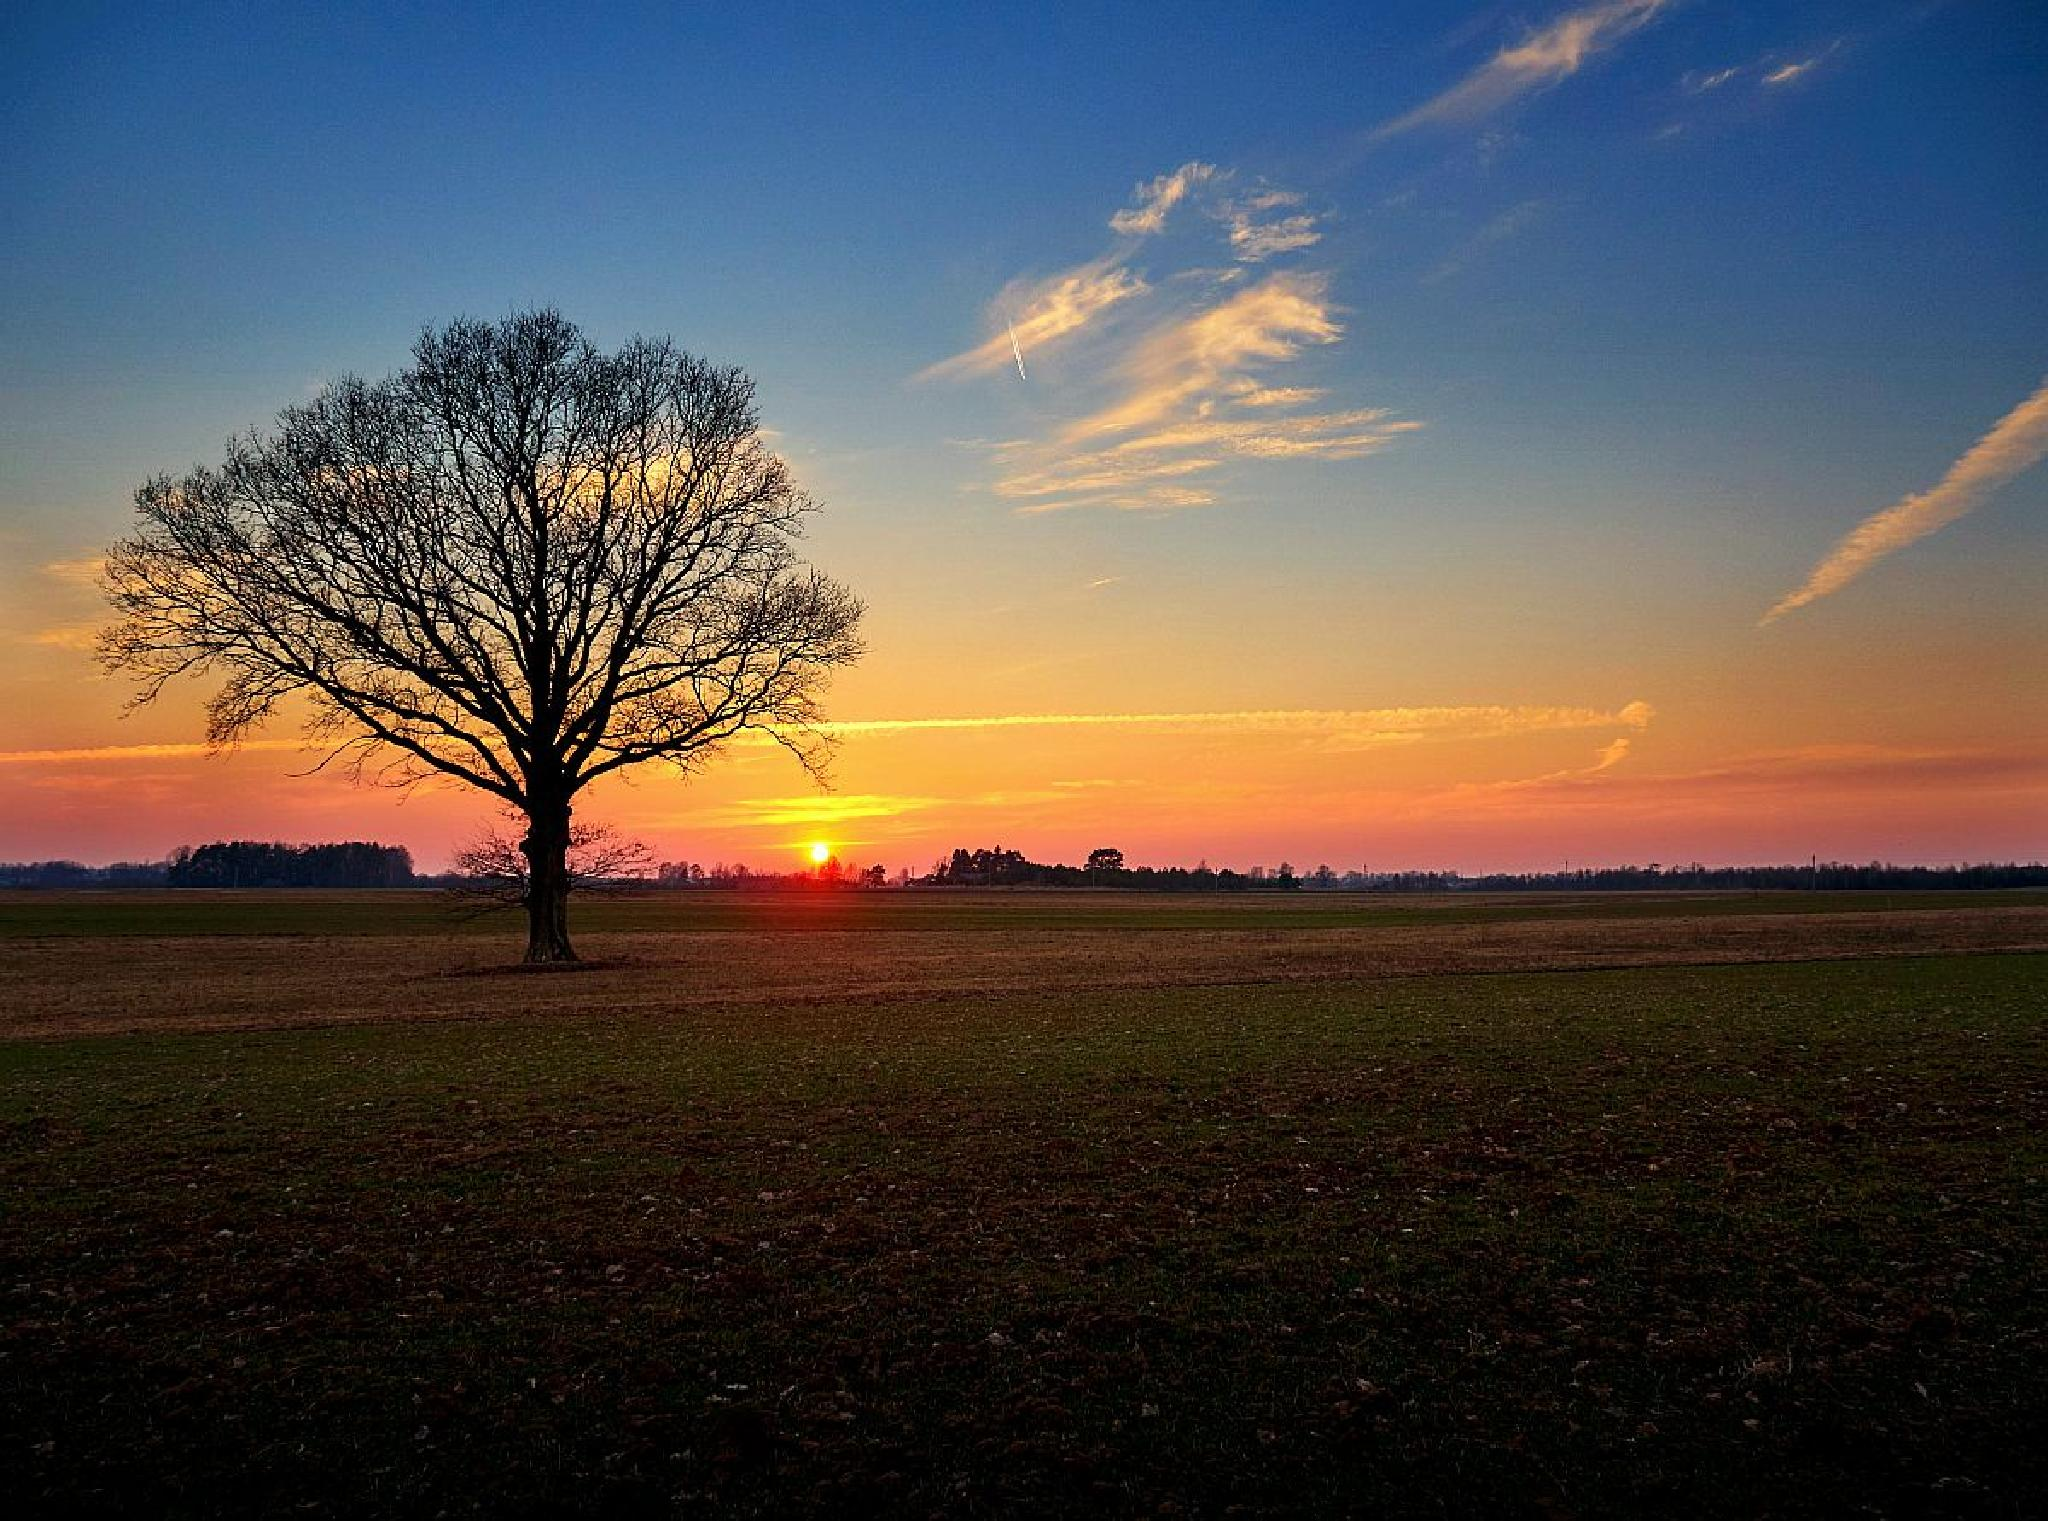 Sunset in March by Almantas B